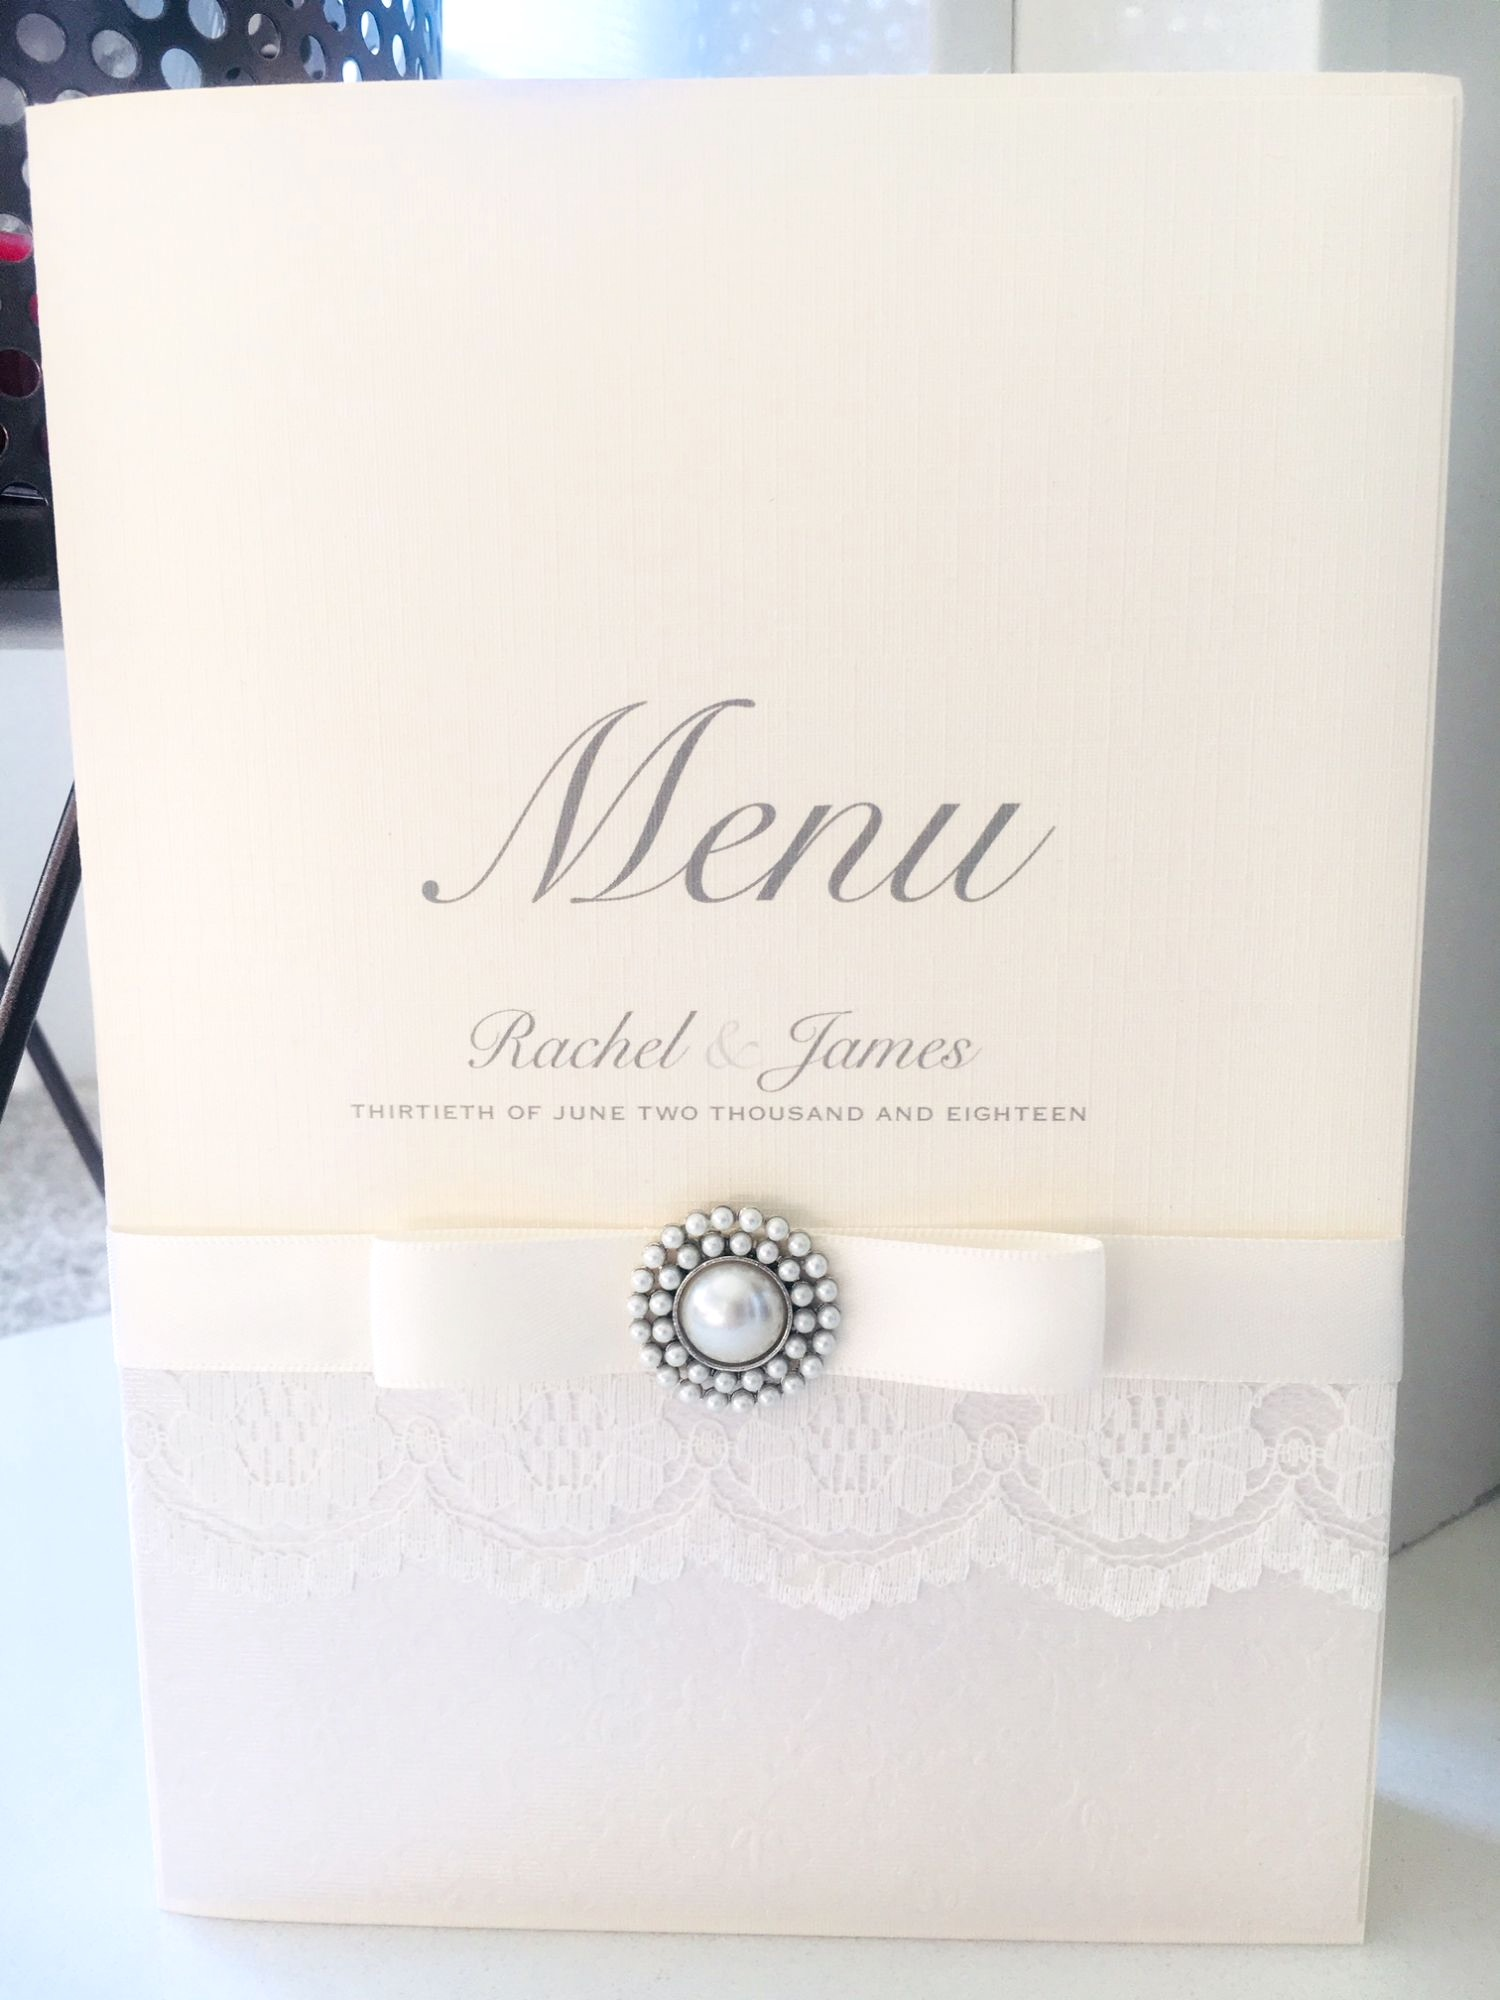 Wedding breakfast menus decorated with brooches and ribbons